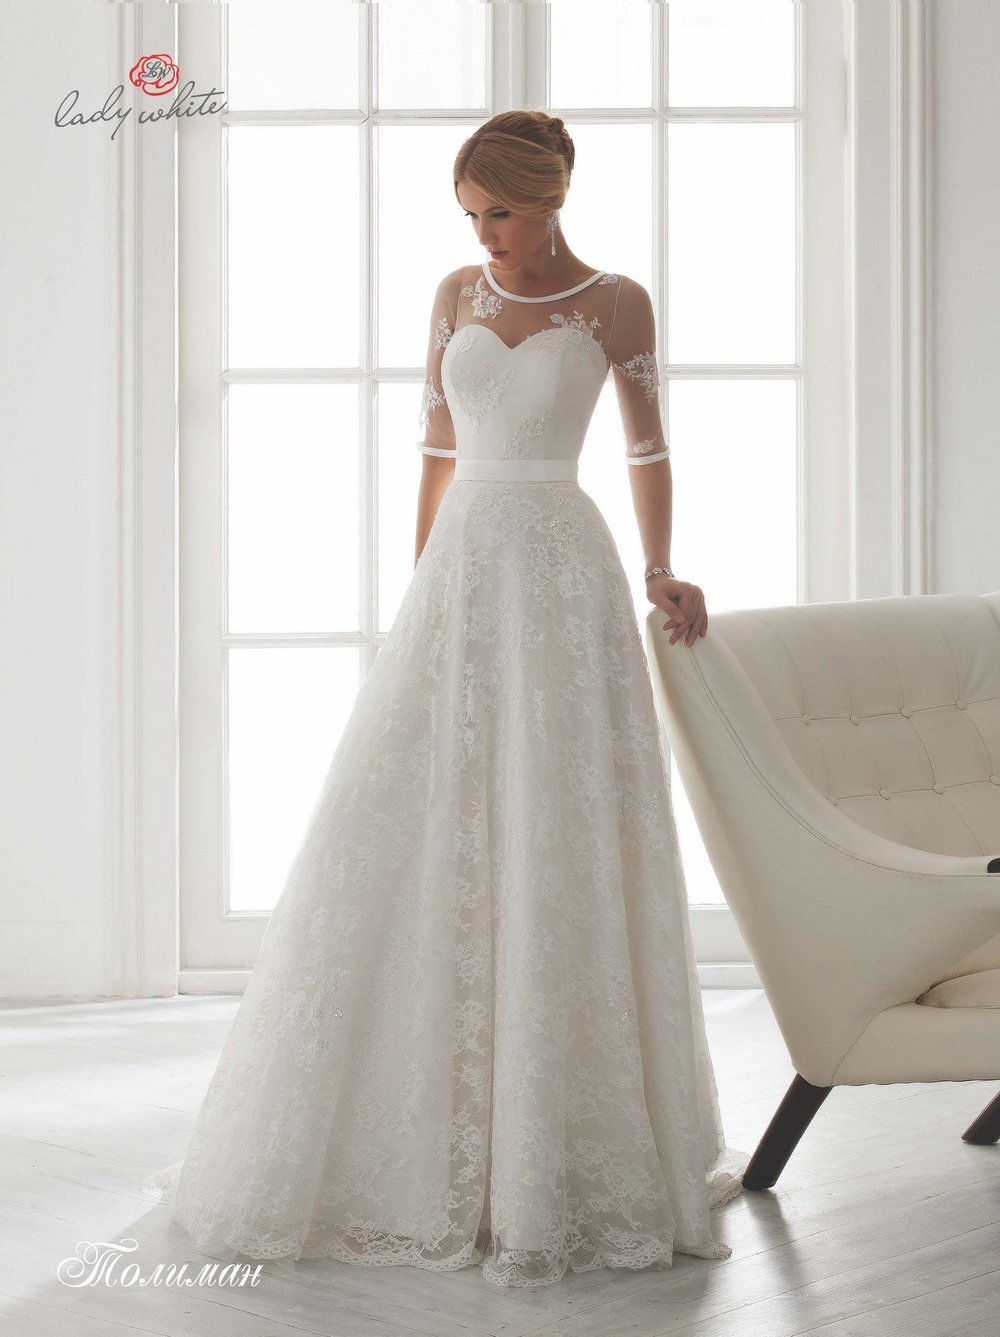 TOLIMAN wedding dress $500